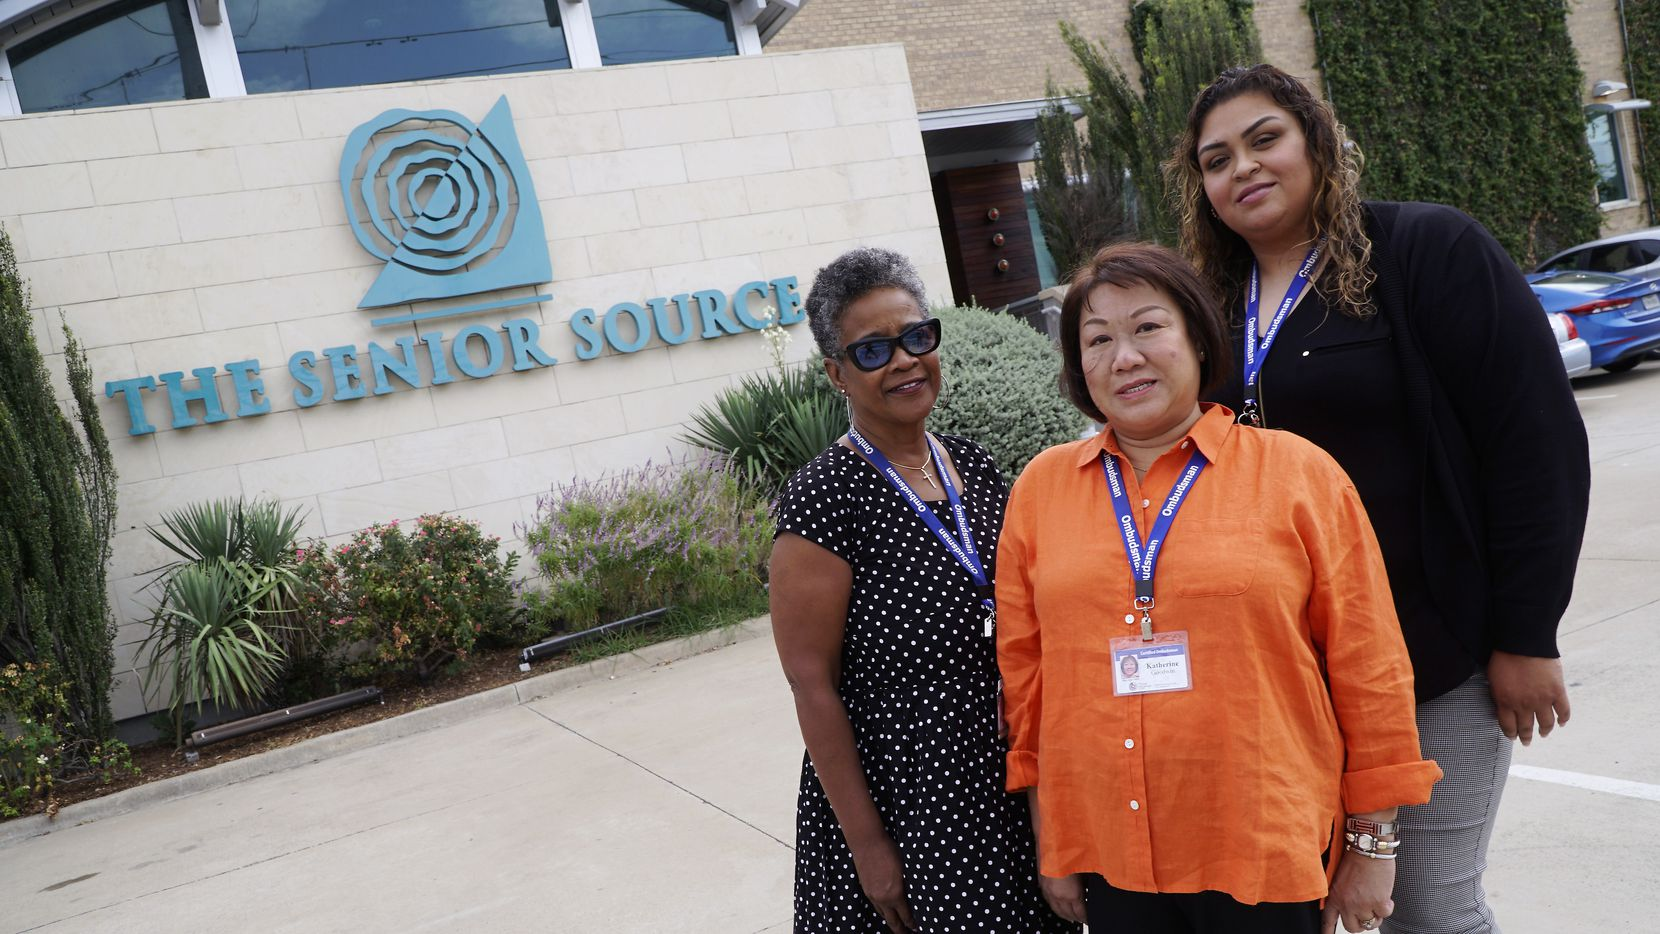 Senior Source Ombudsmen (from left) Pam Mickens, Katherine Goodwin, and Rosie Vega at their office in Dallas, Texas on Thursday, October 10, 2019.